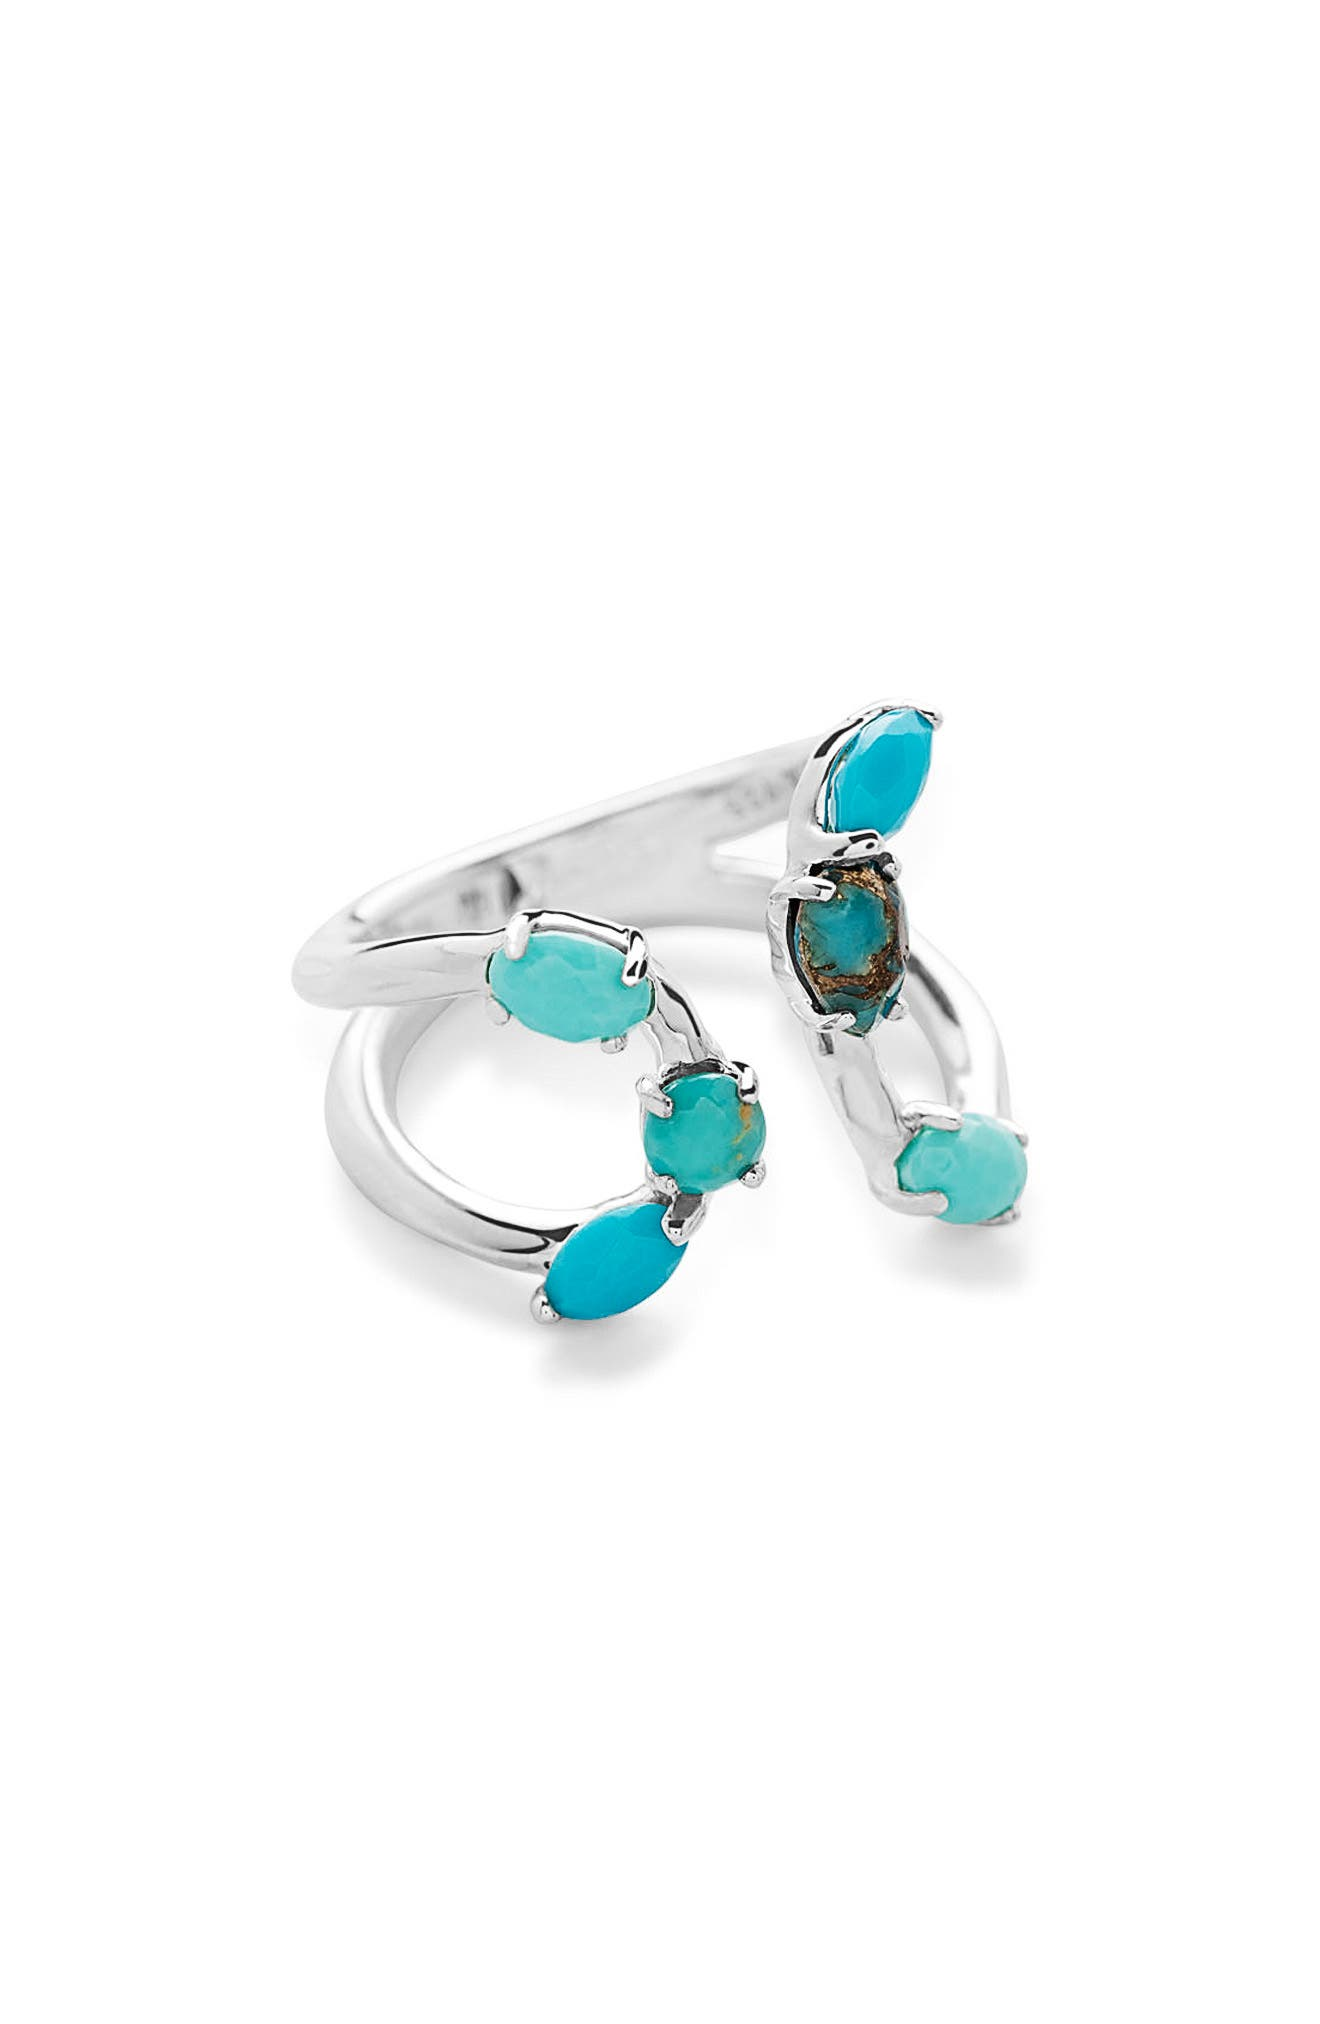 Rock Candy Bypass Ring,                         Main,                         color, Turquoise